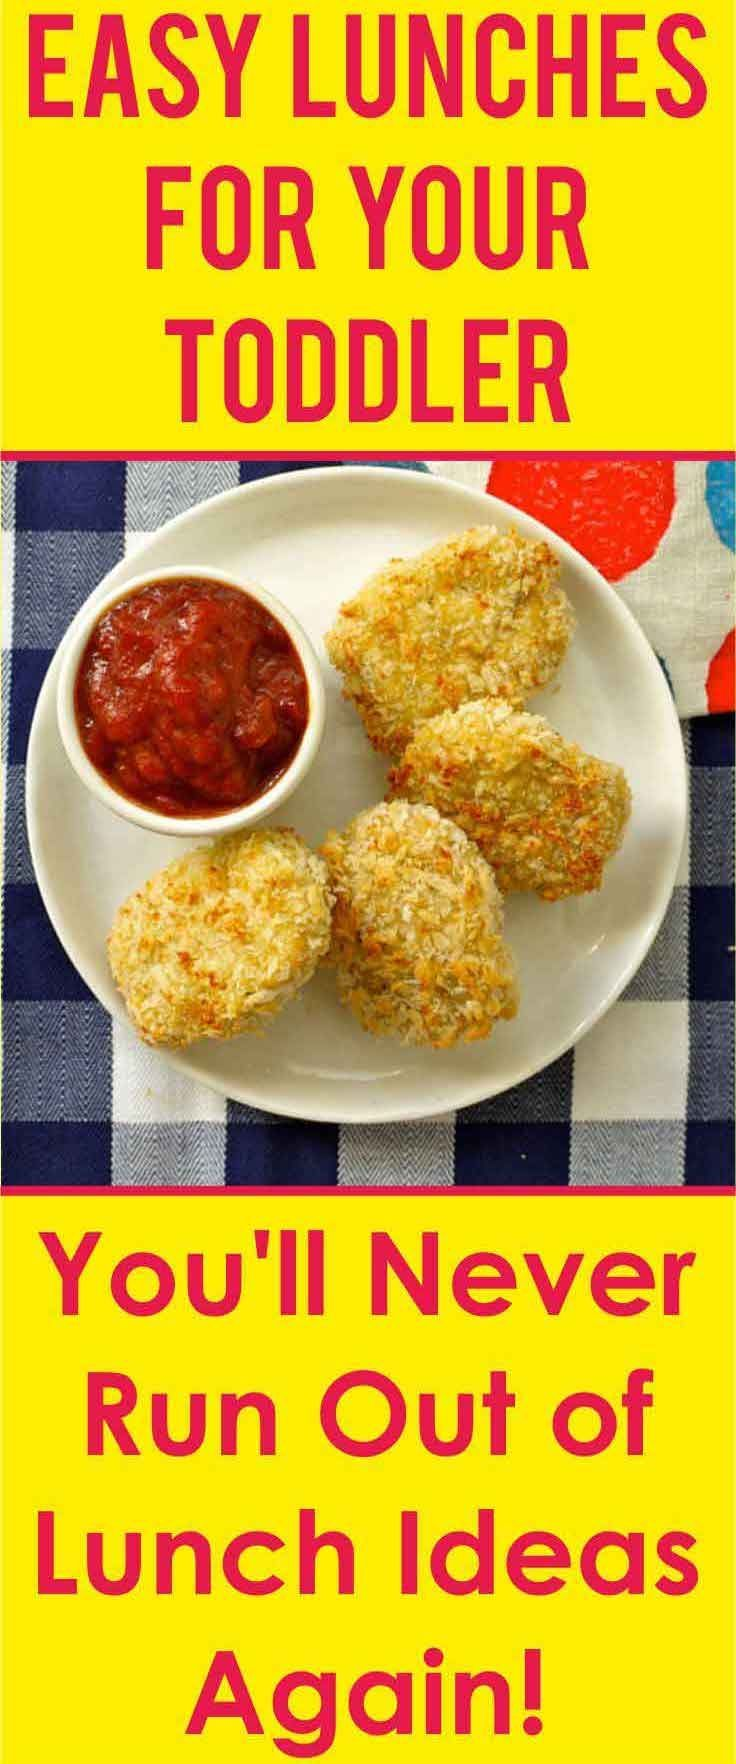 Lunch Ideas for Toddlers. You'll Never Run Out of Lunch Ideas Again! images